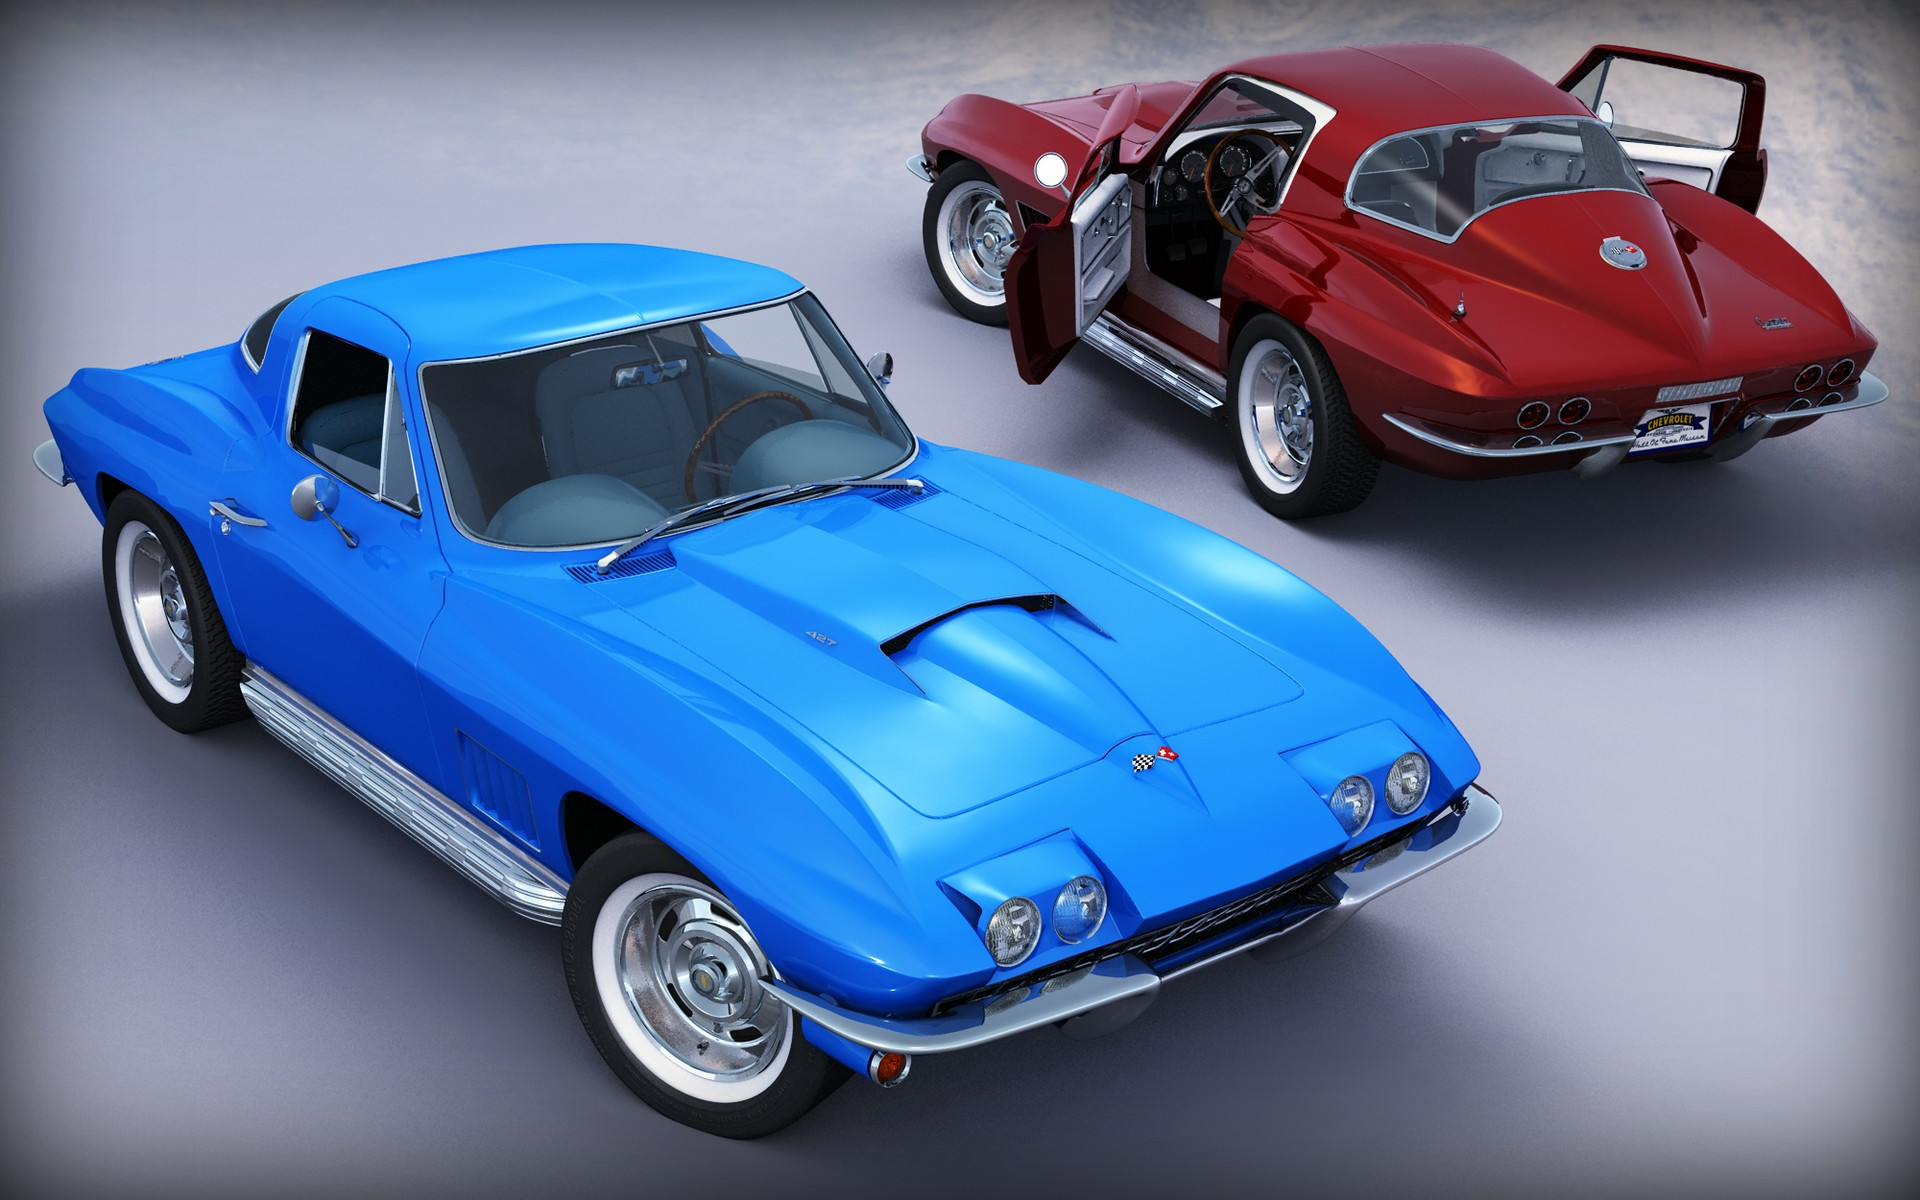 CORVETTE STINGRAY 67-1 par angelesteban